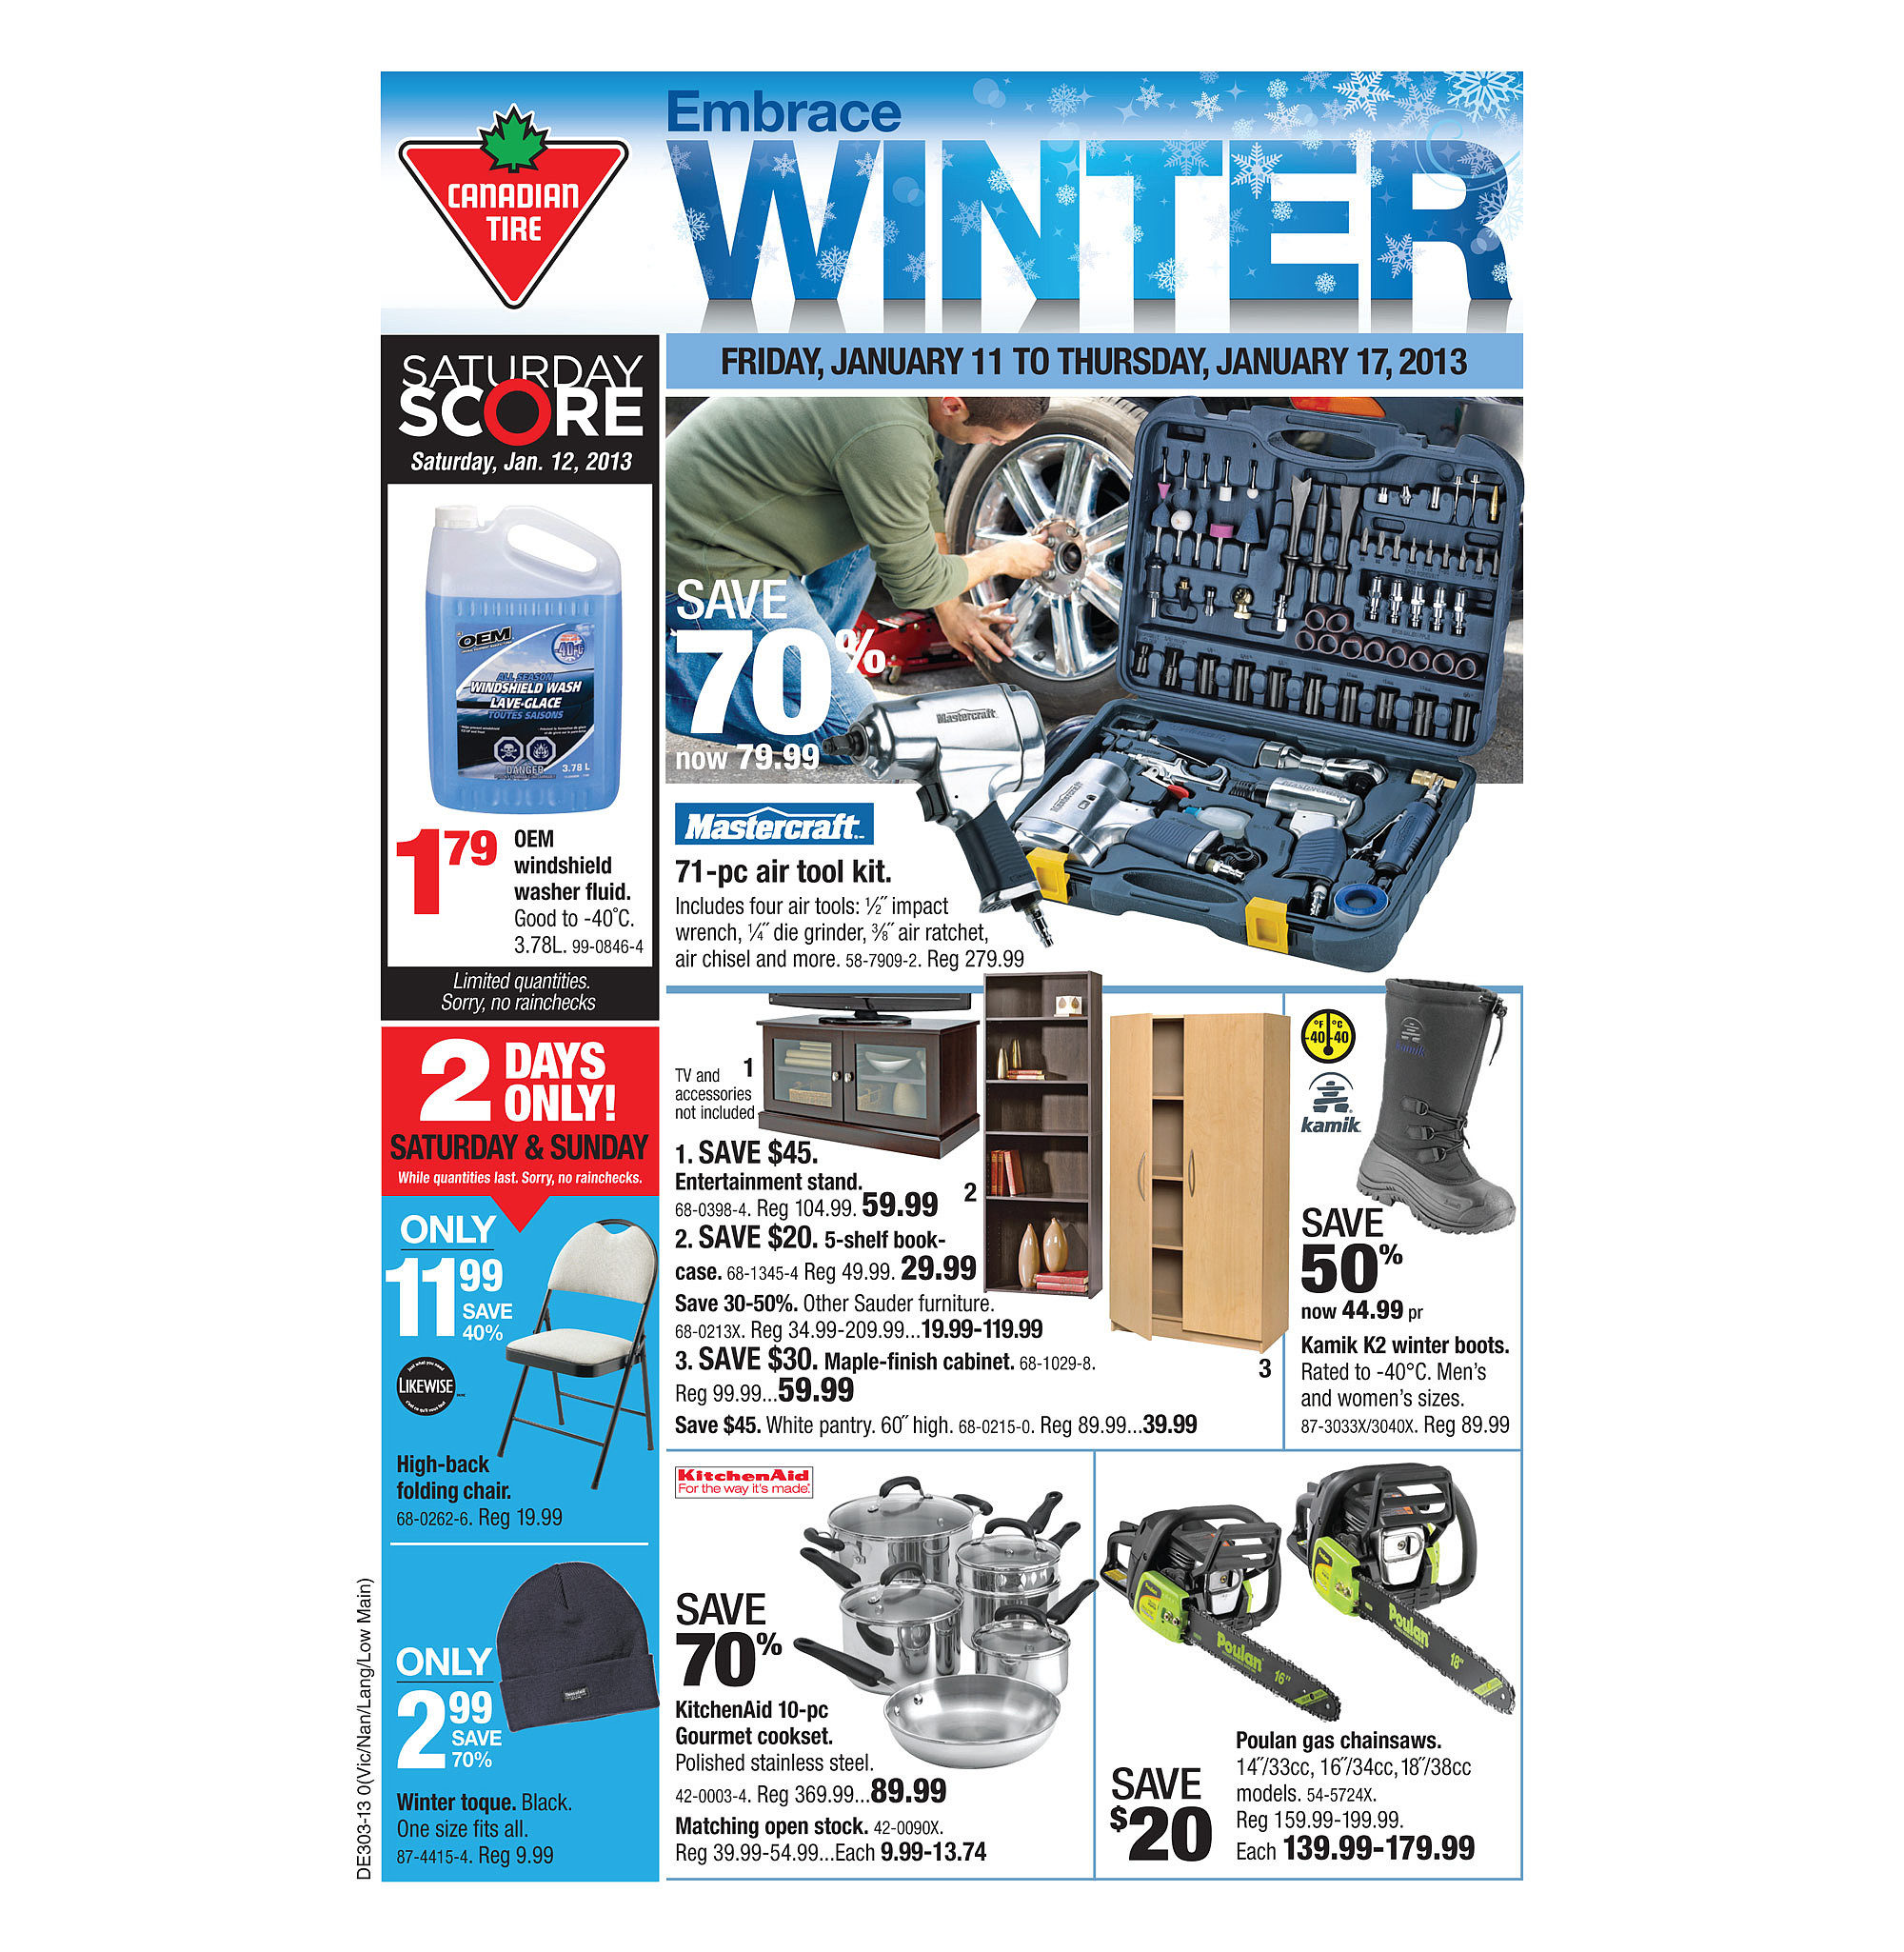 Canadian Tire Book Shelves Canadian Tire Weekly Flyer Weekly Flyer Jan 10 17